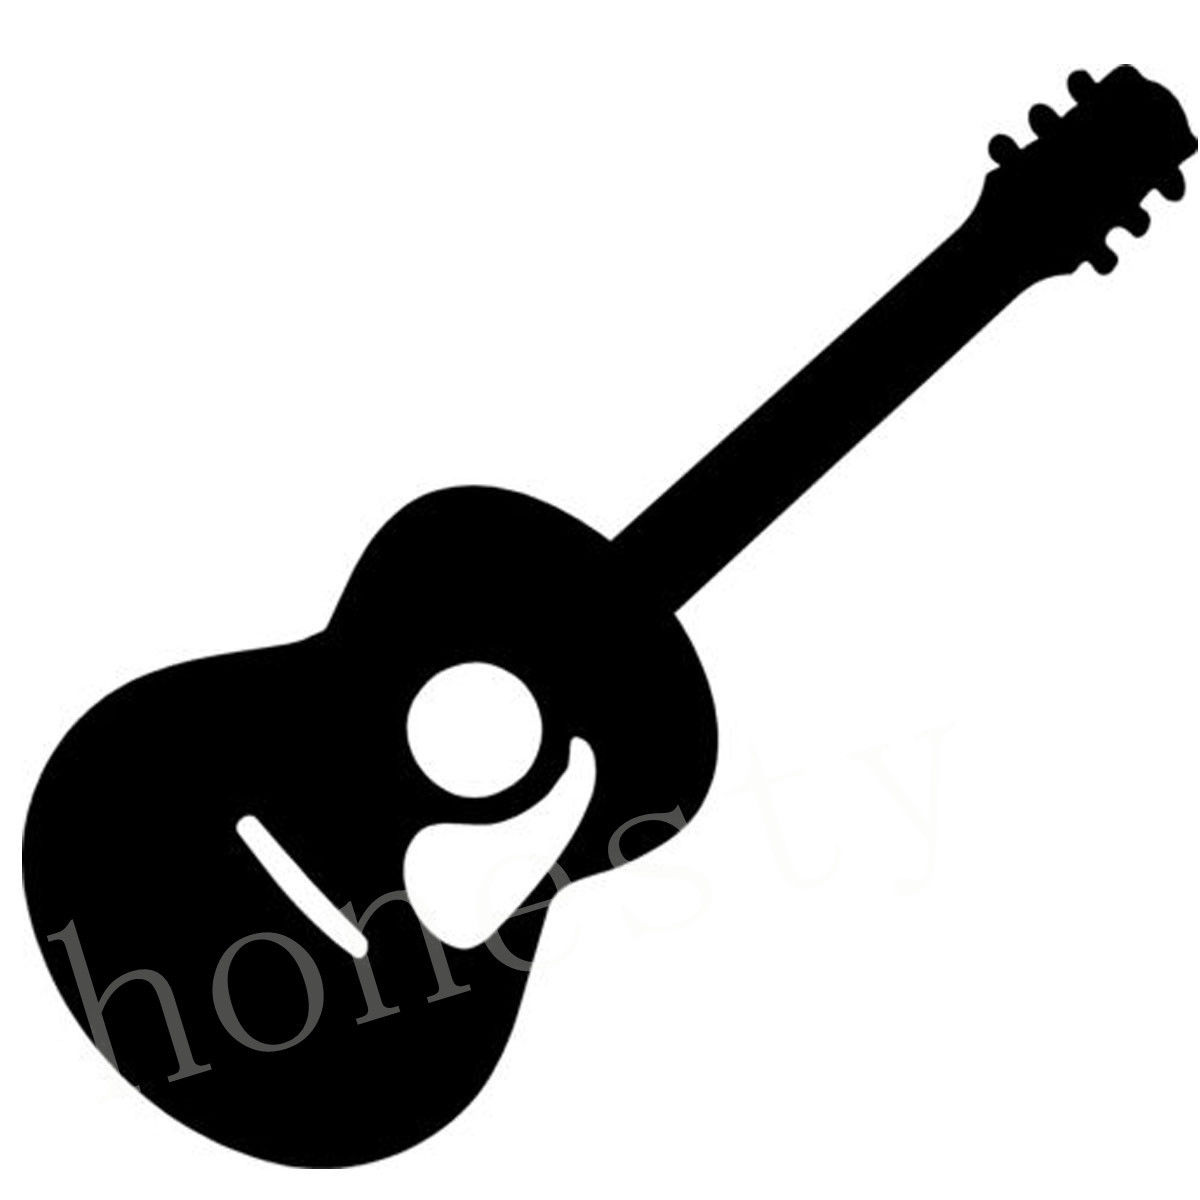 Acoustic Guitar Graphic Vinyl Car Body Bumper Window